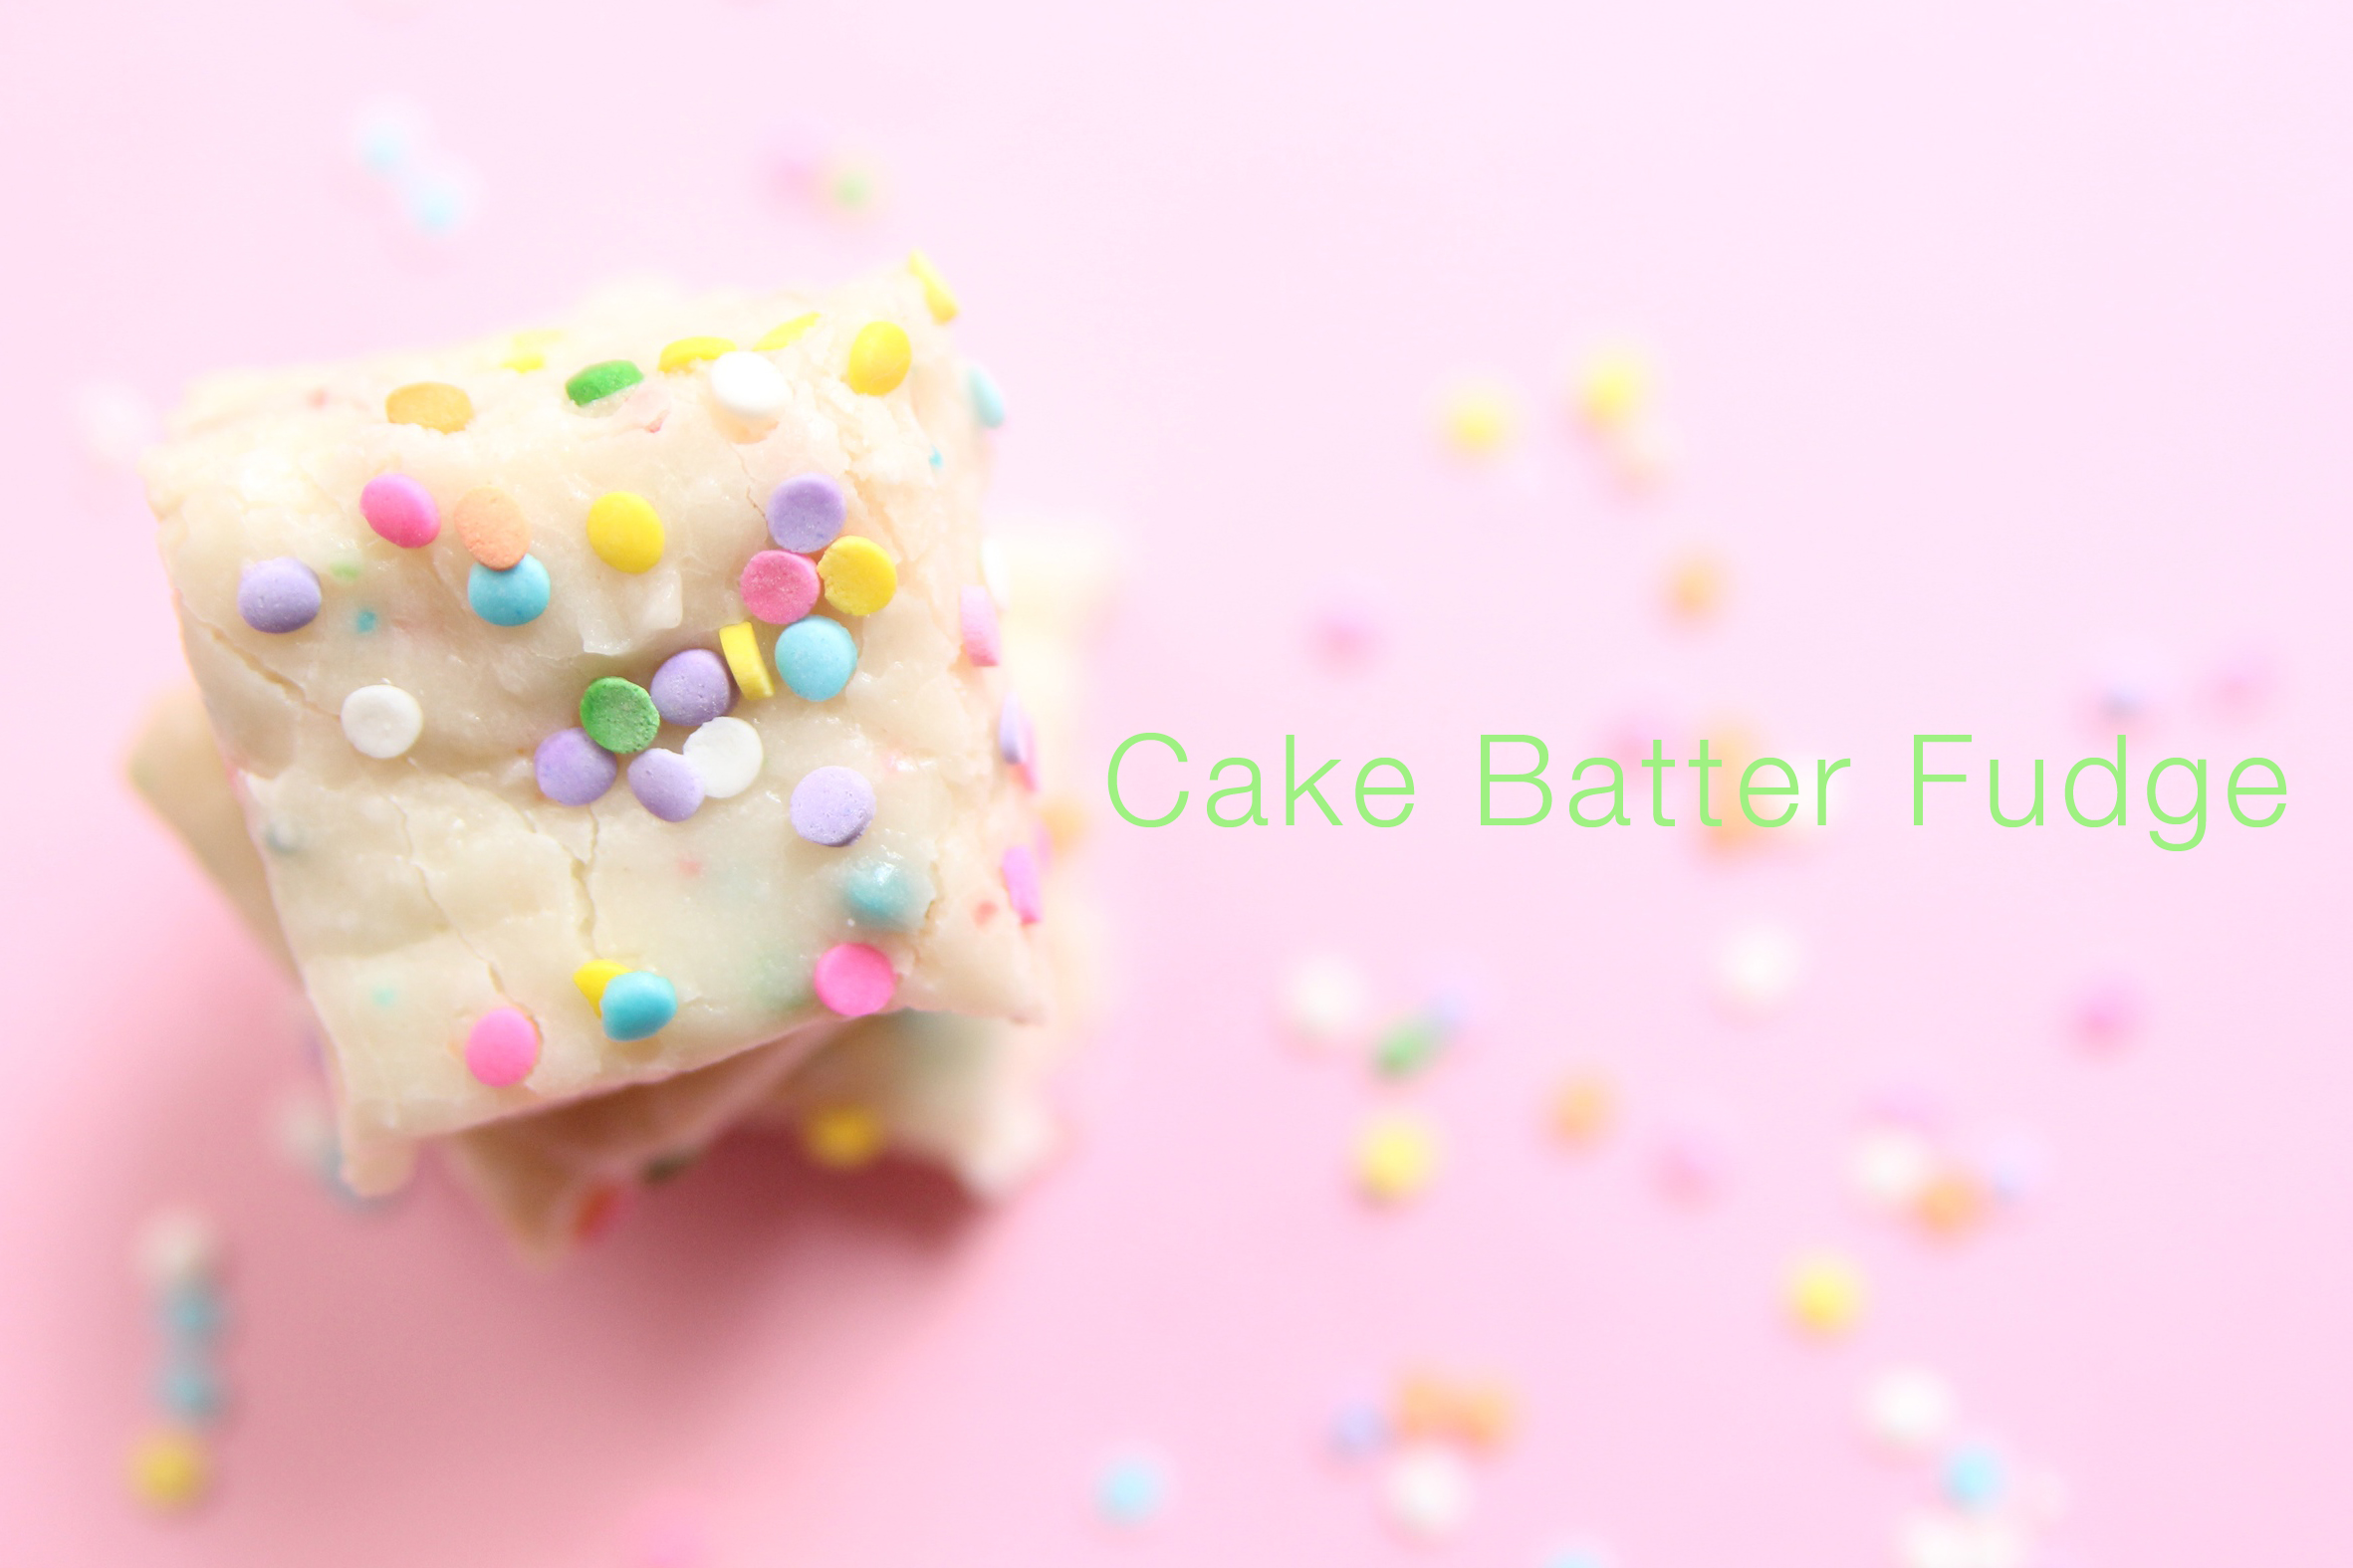 Cake Batter Fudge Sweet Little Details